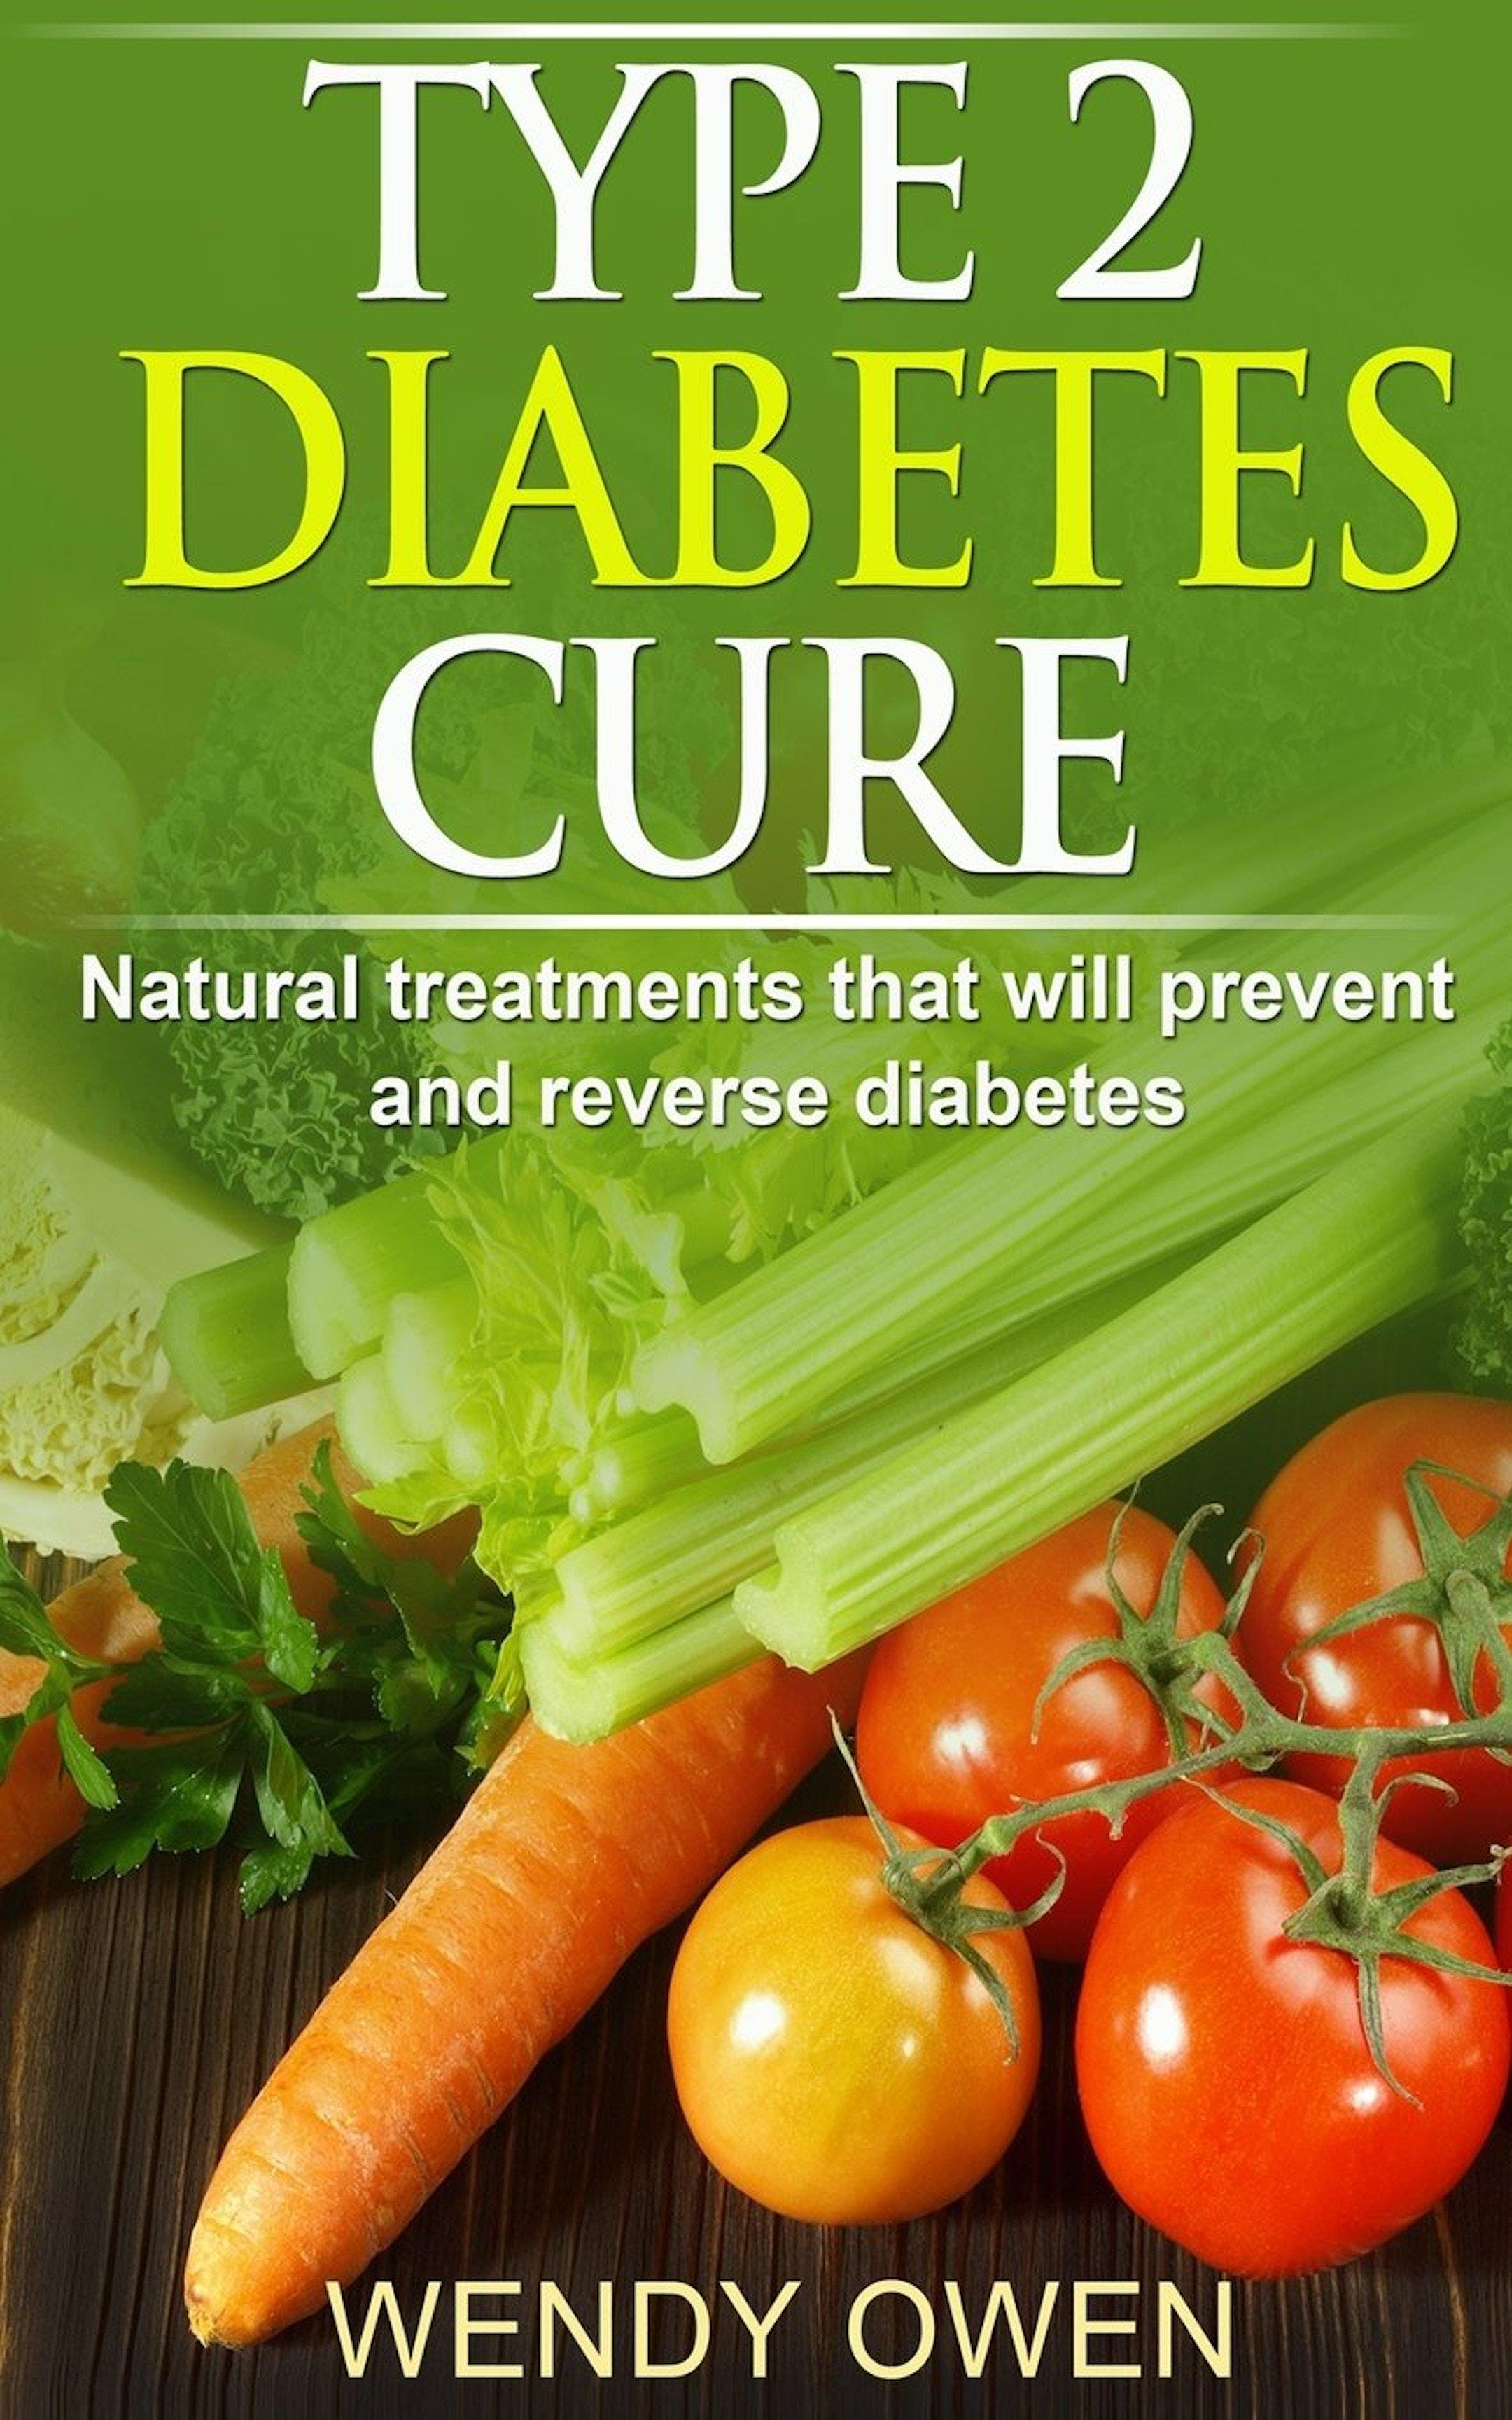 Type 2 Diabetes Reversal Workshop - Lutz, Florida